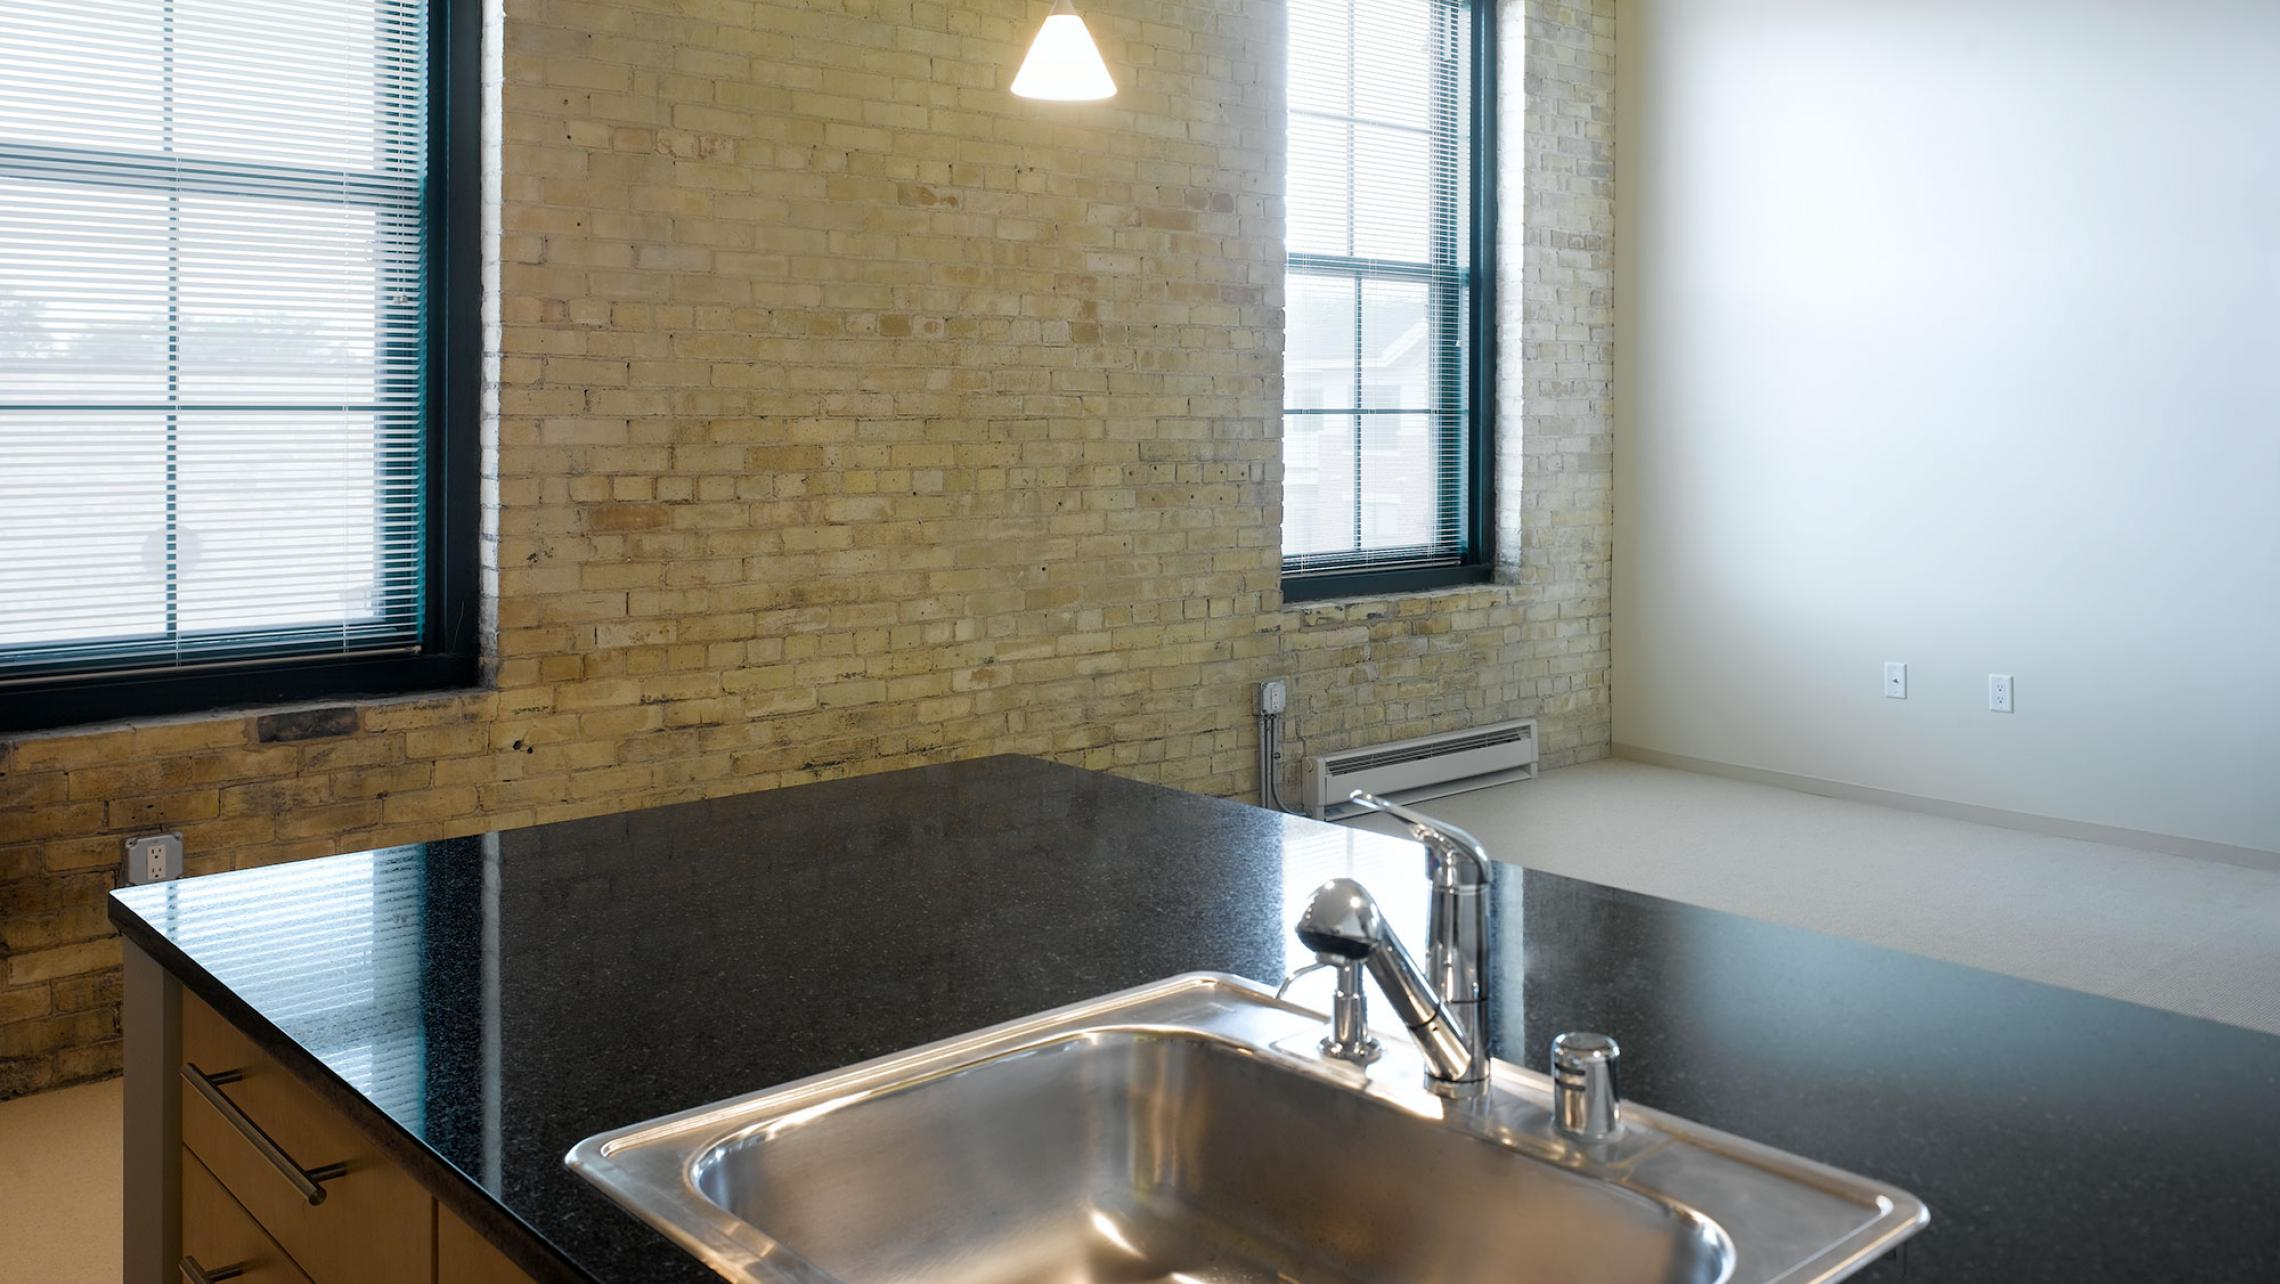 ULI Tobacco Lofts Apartments - Kitchen with High End Finishes